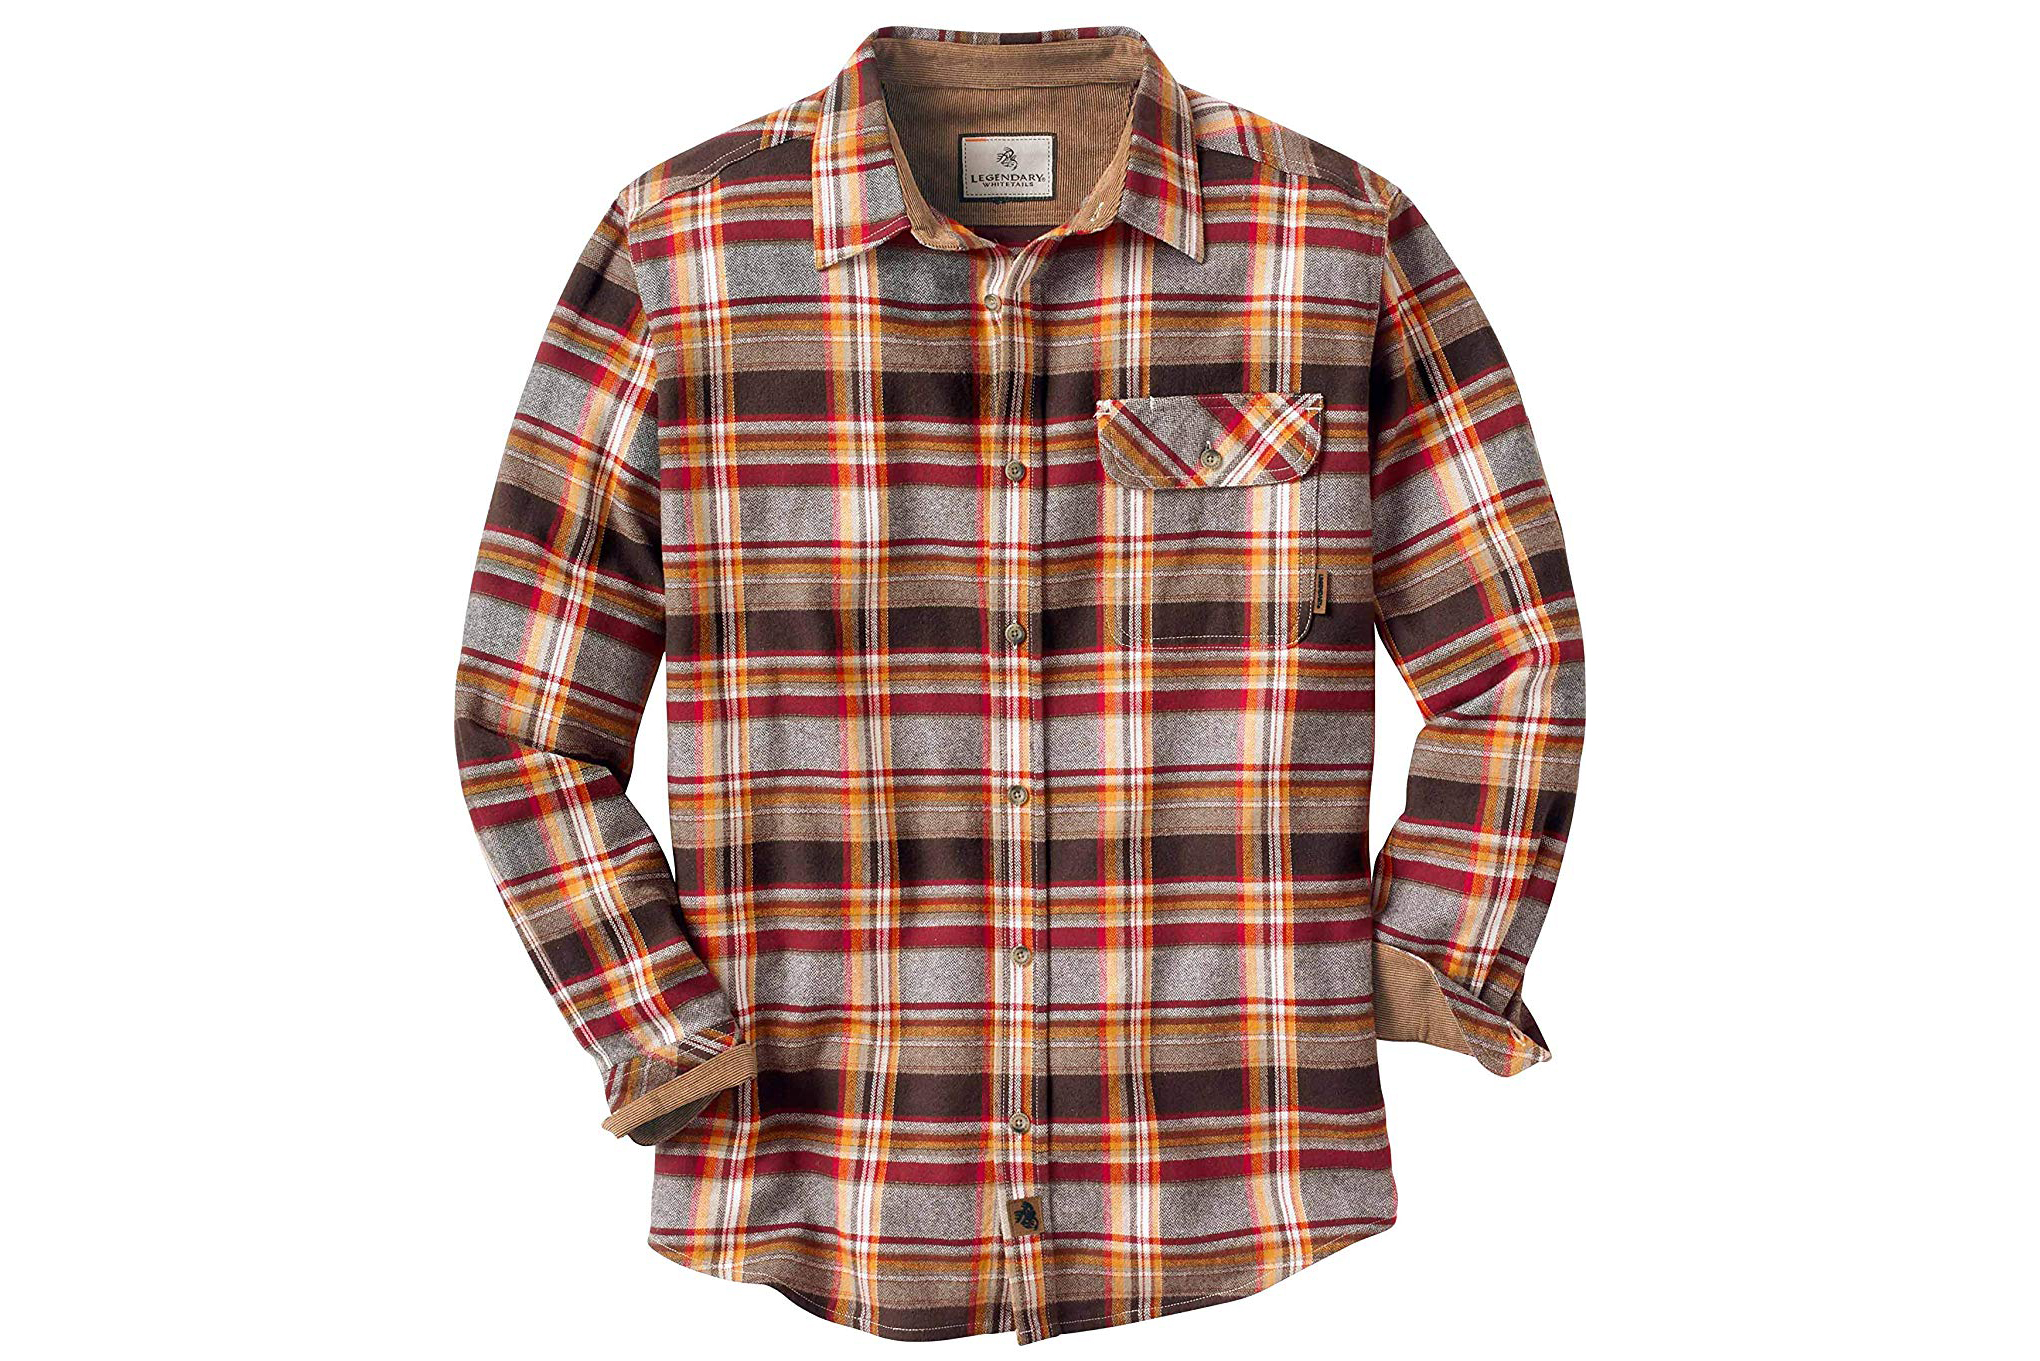 df7fd60b41f2 Affordable Flannel – Legendary Whitetails Buck Camp Flannel Shirt: $30-40